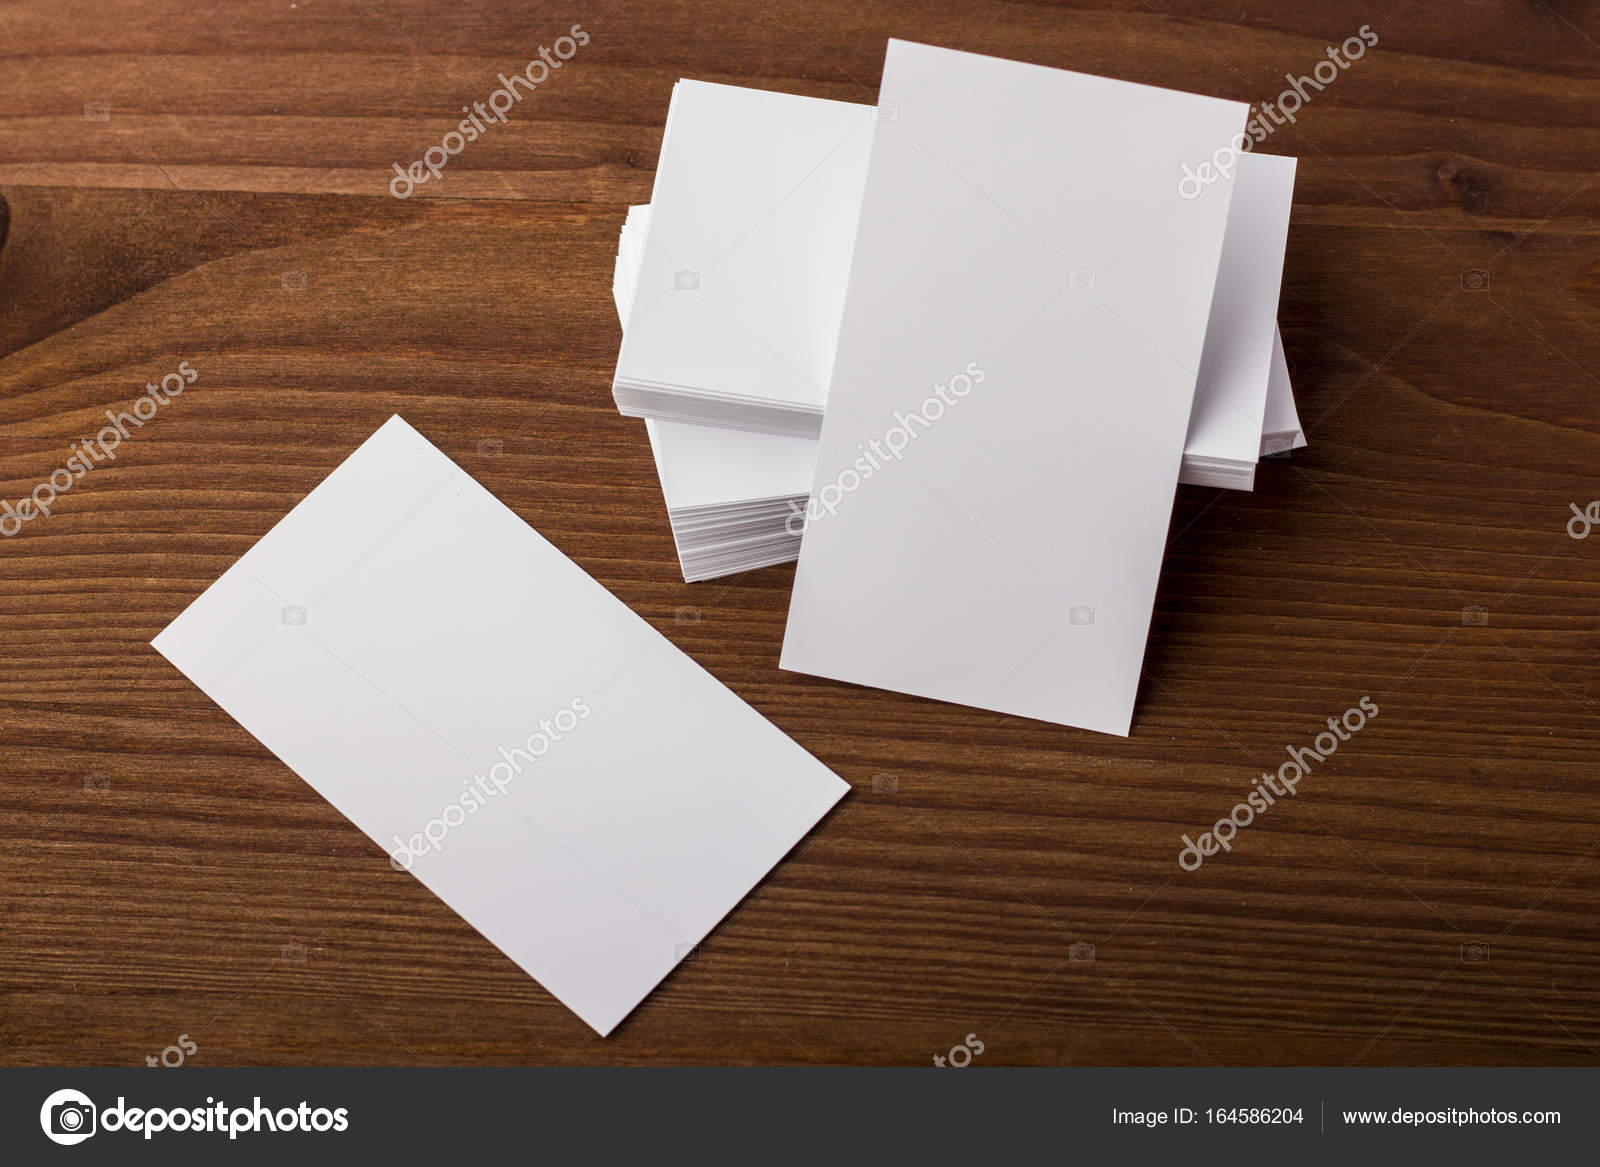 blank business cards on wooden background stock photo art rich